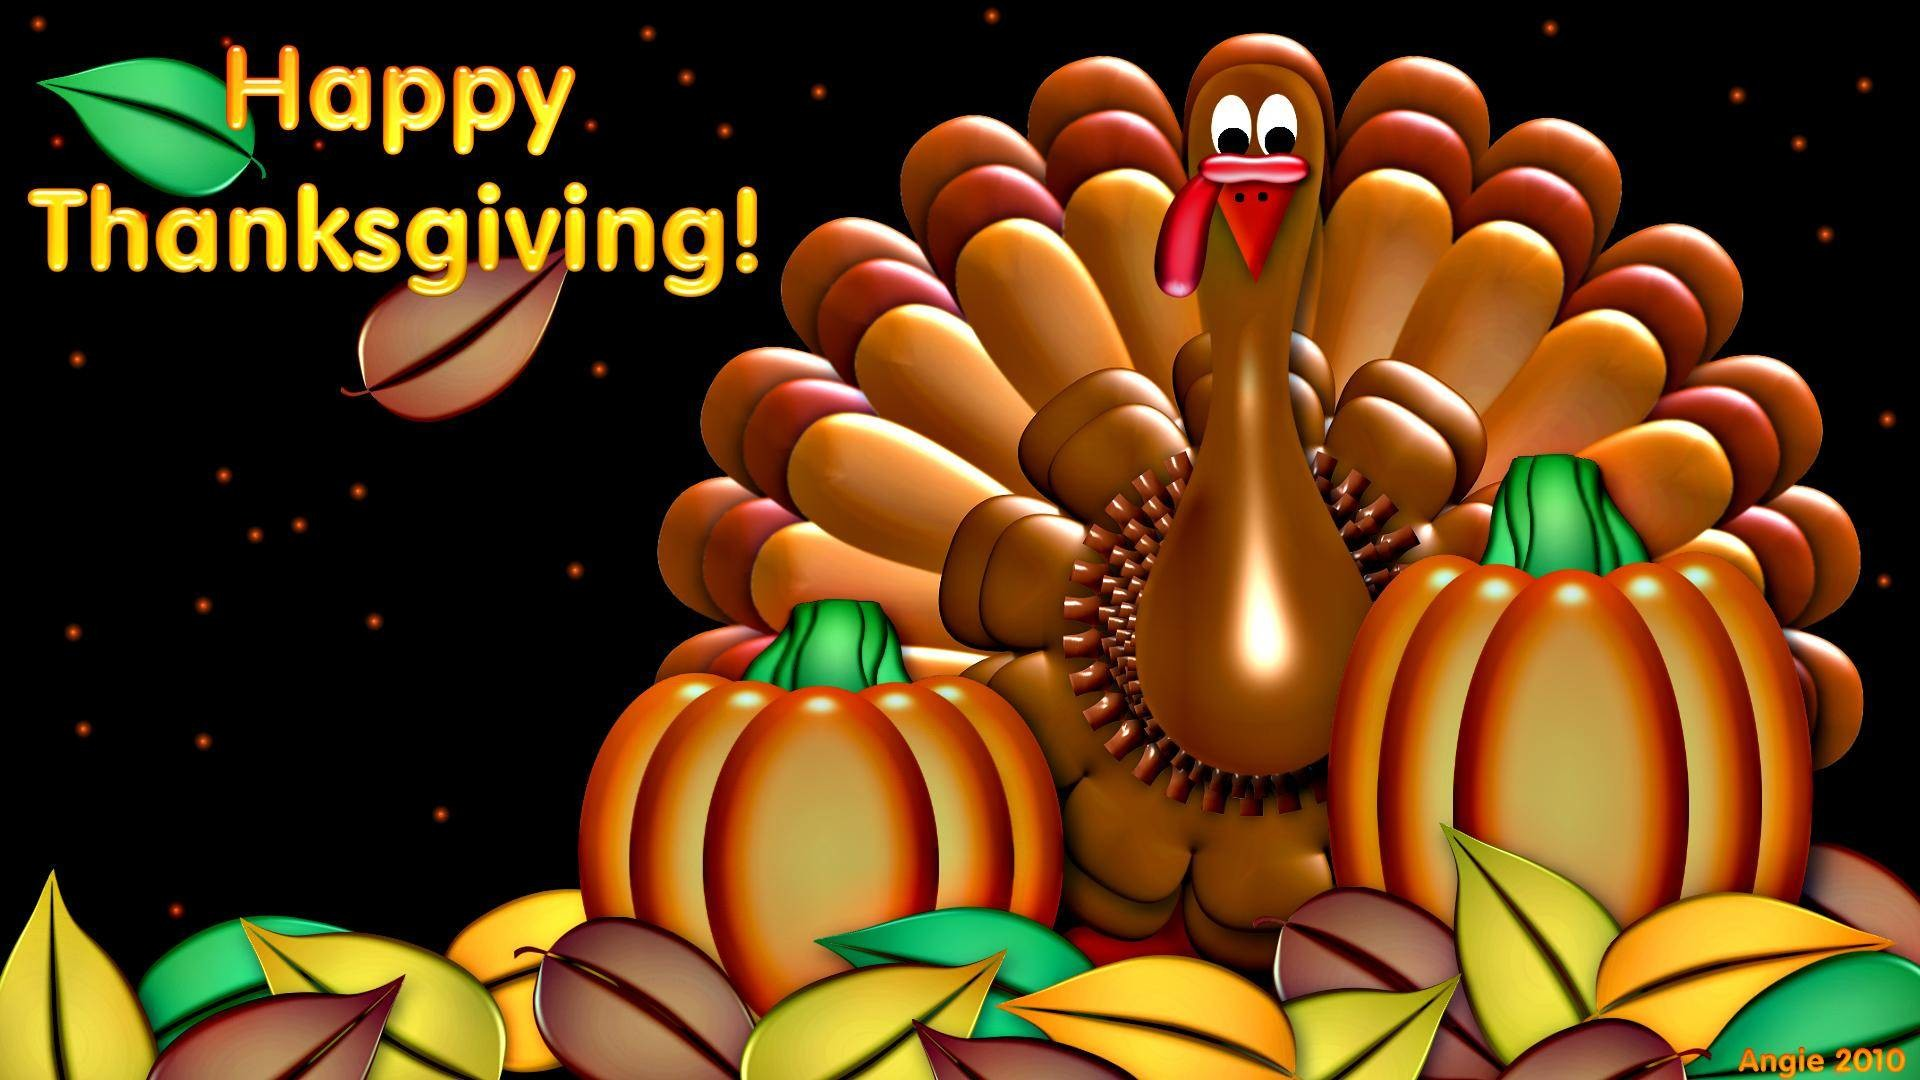 1920x1080 Funny Thanksgiving Wallpaper Backgrounds #8779645